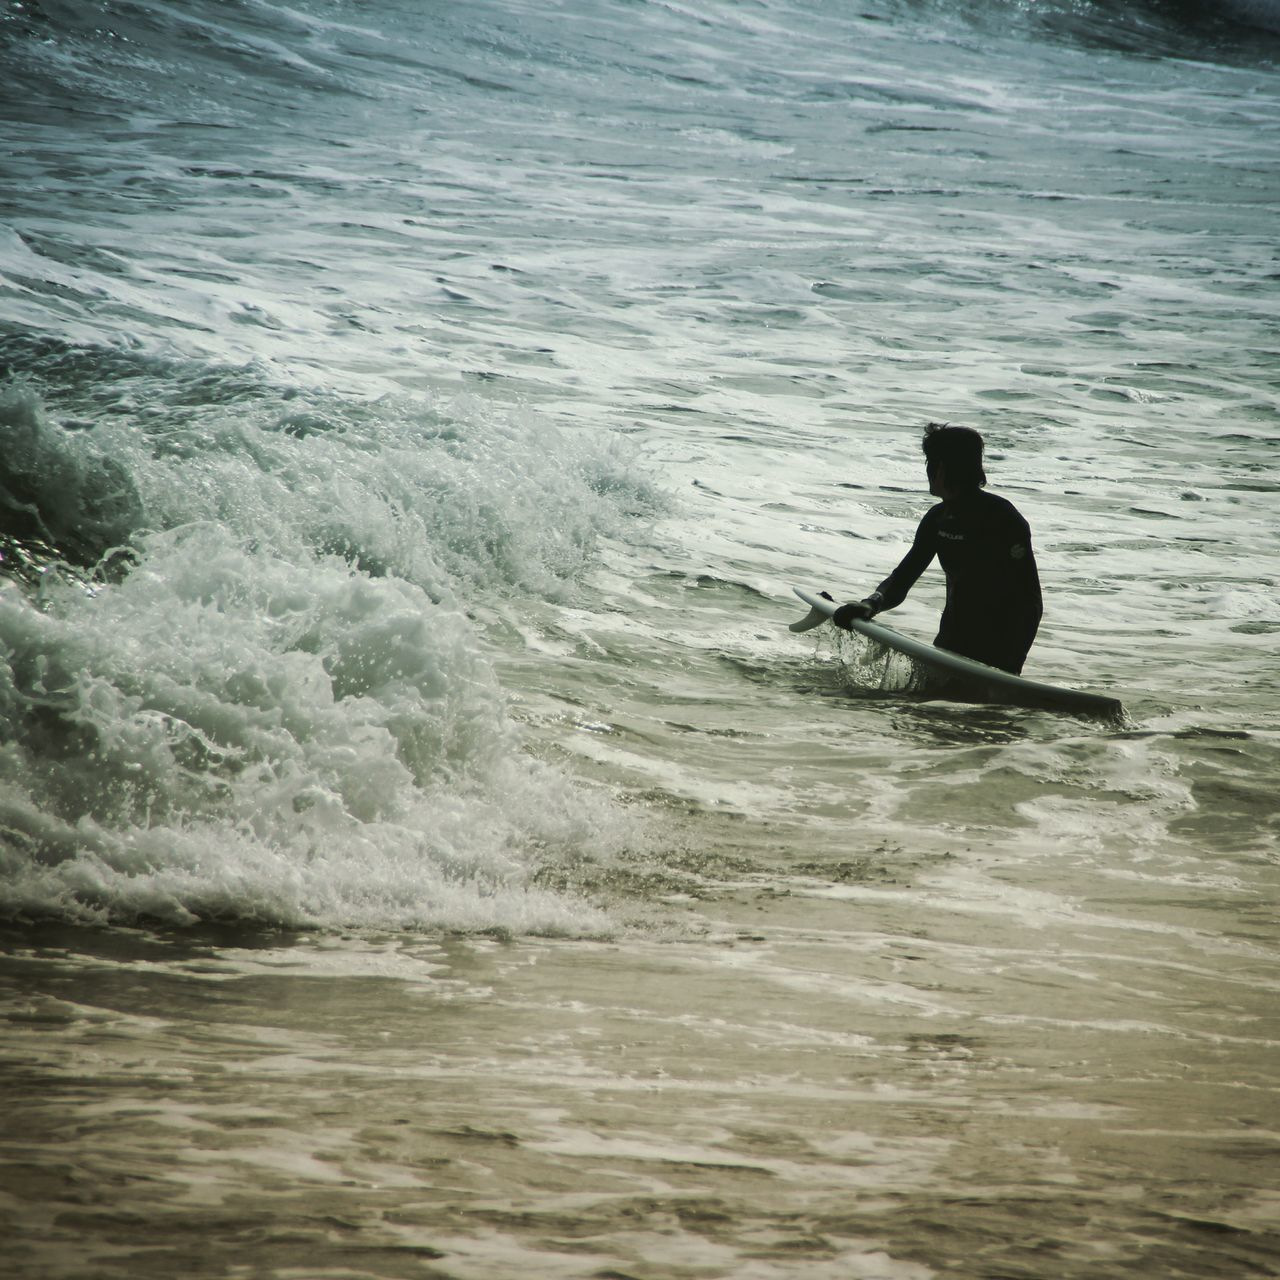 Surfer Sea Surfing Surf Sitges Barcelona España Sitges Beach Beachphotography Hello World Relaxing Enjoying Life Nature_collection Landscape_collection EyeEmNatureLover Nature_collection Concert Photography Copy Space